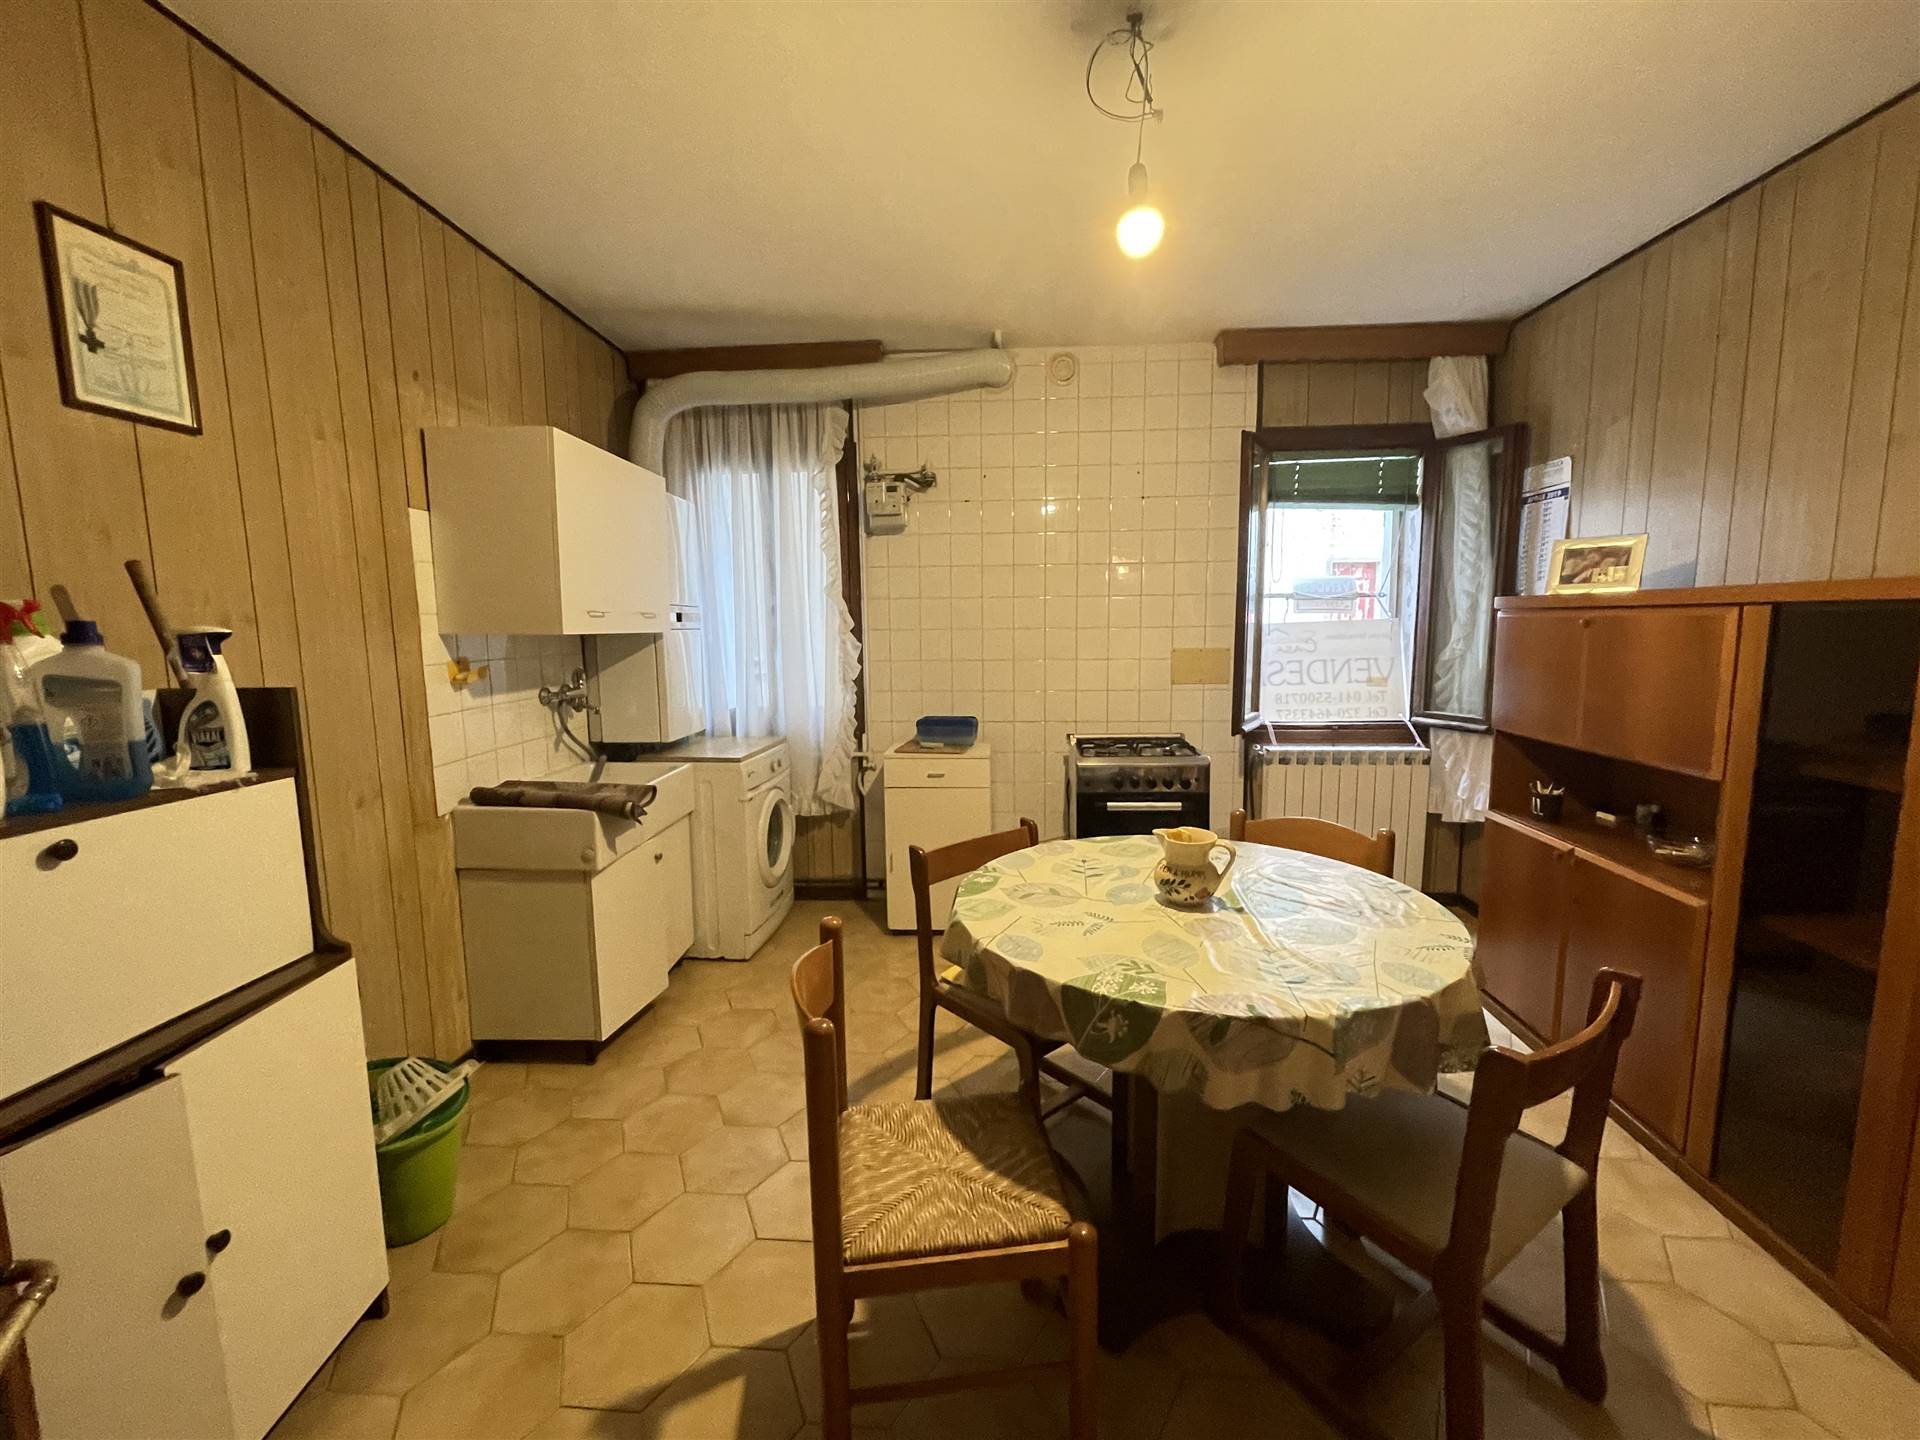 CHIOGGIA CENTRO, CHIOGGIA, Detached house for sale of 100 Sq. mt., Good condition, Heating Individual heating system, Energetic class: G, placed at